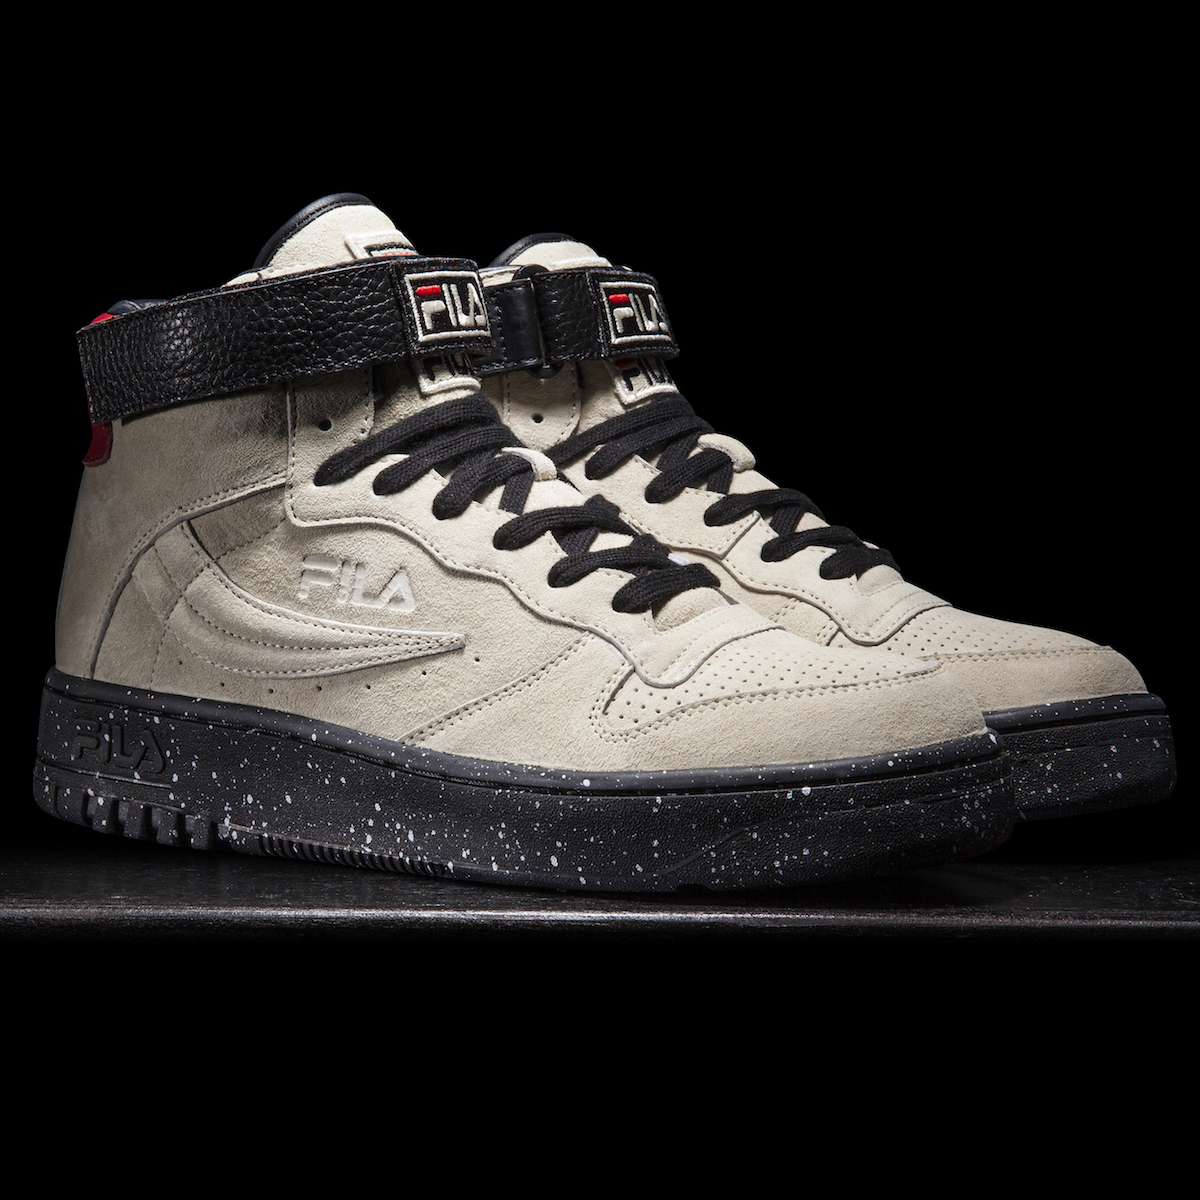 Detailed Look at the FILA x Nas x Ghostbusters Footwear